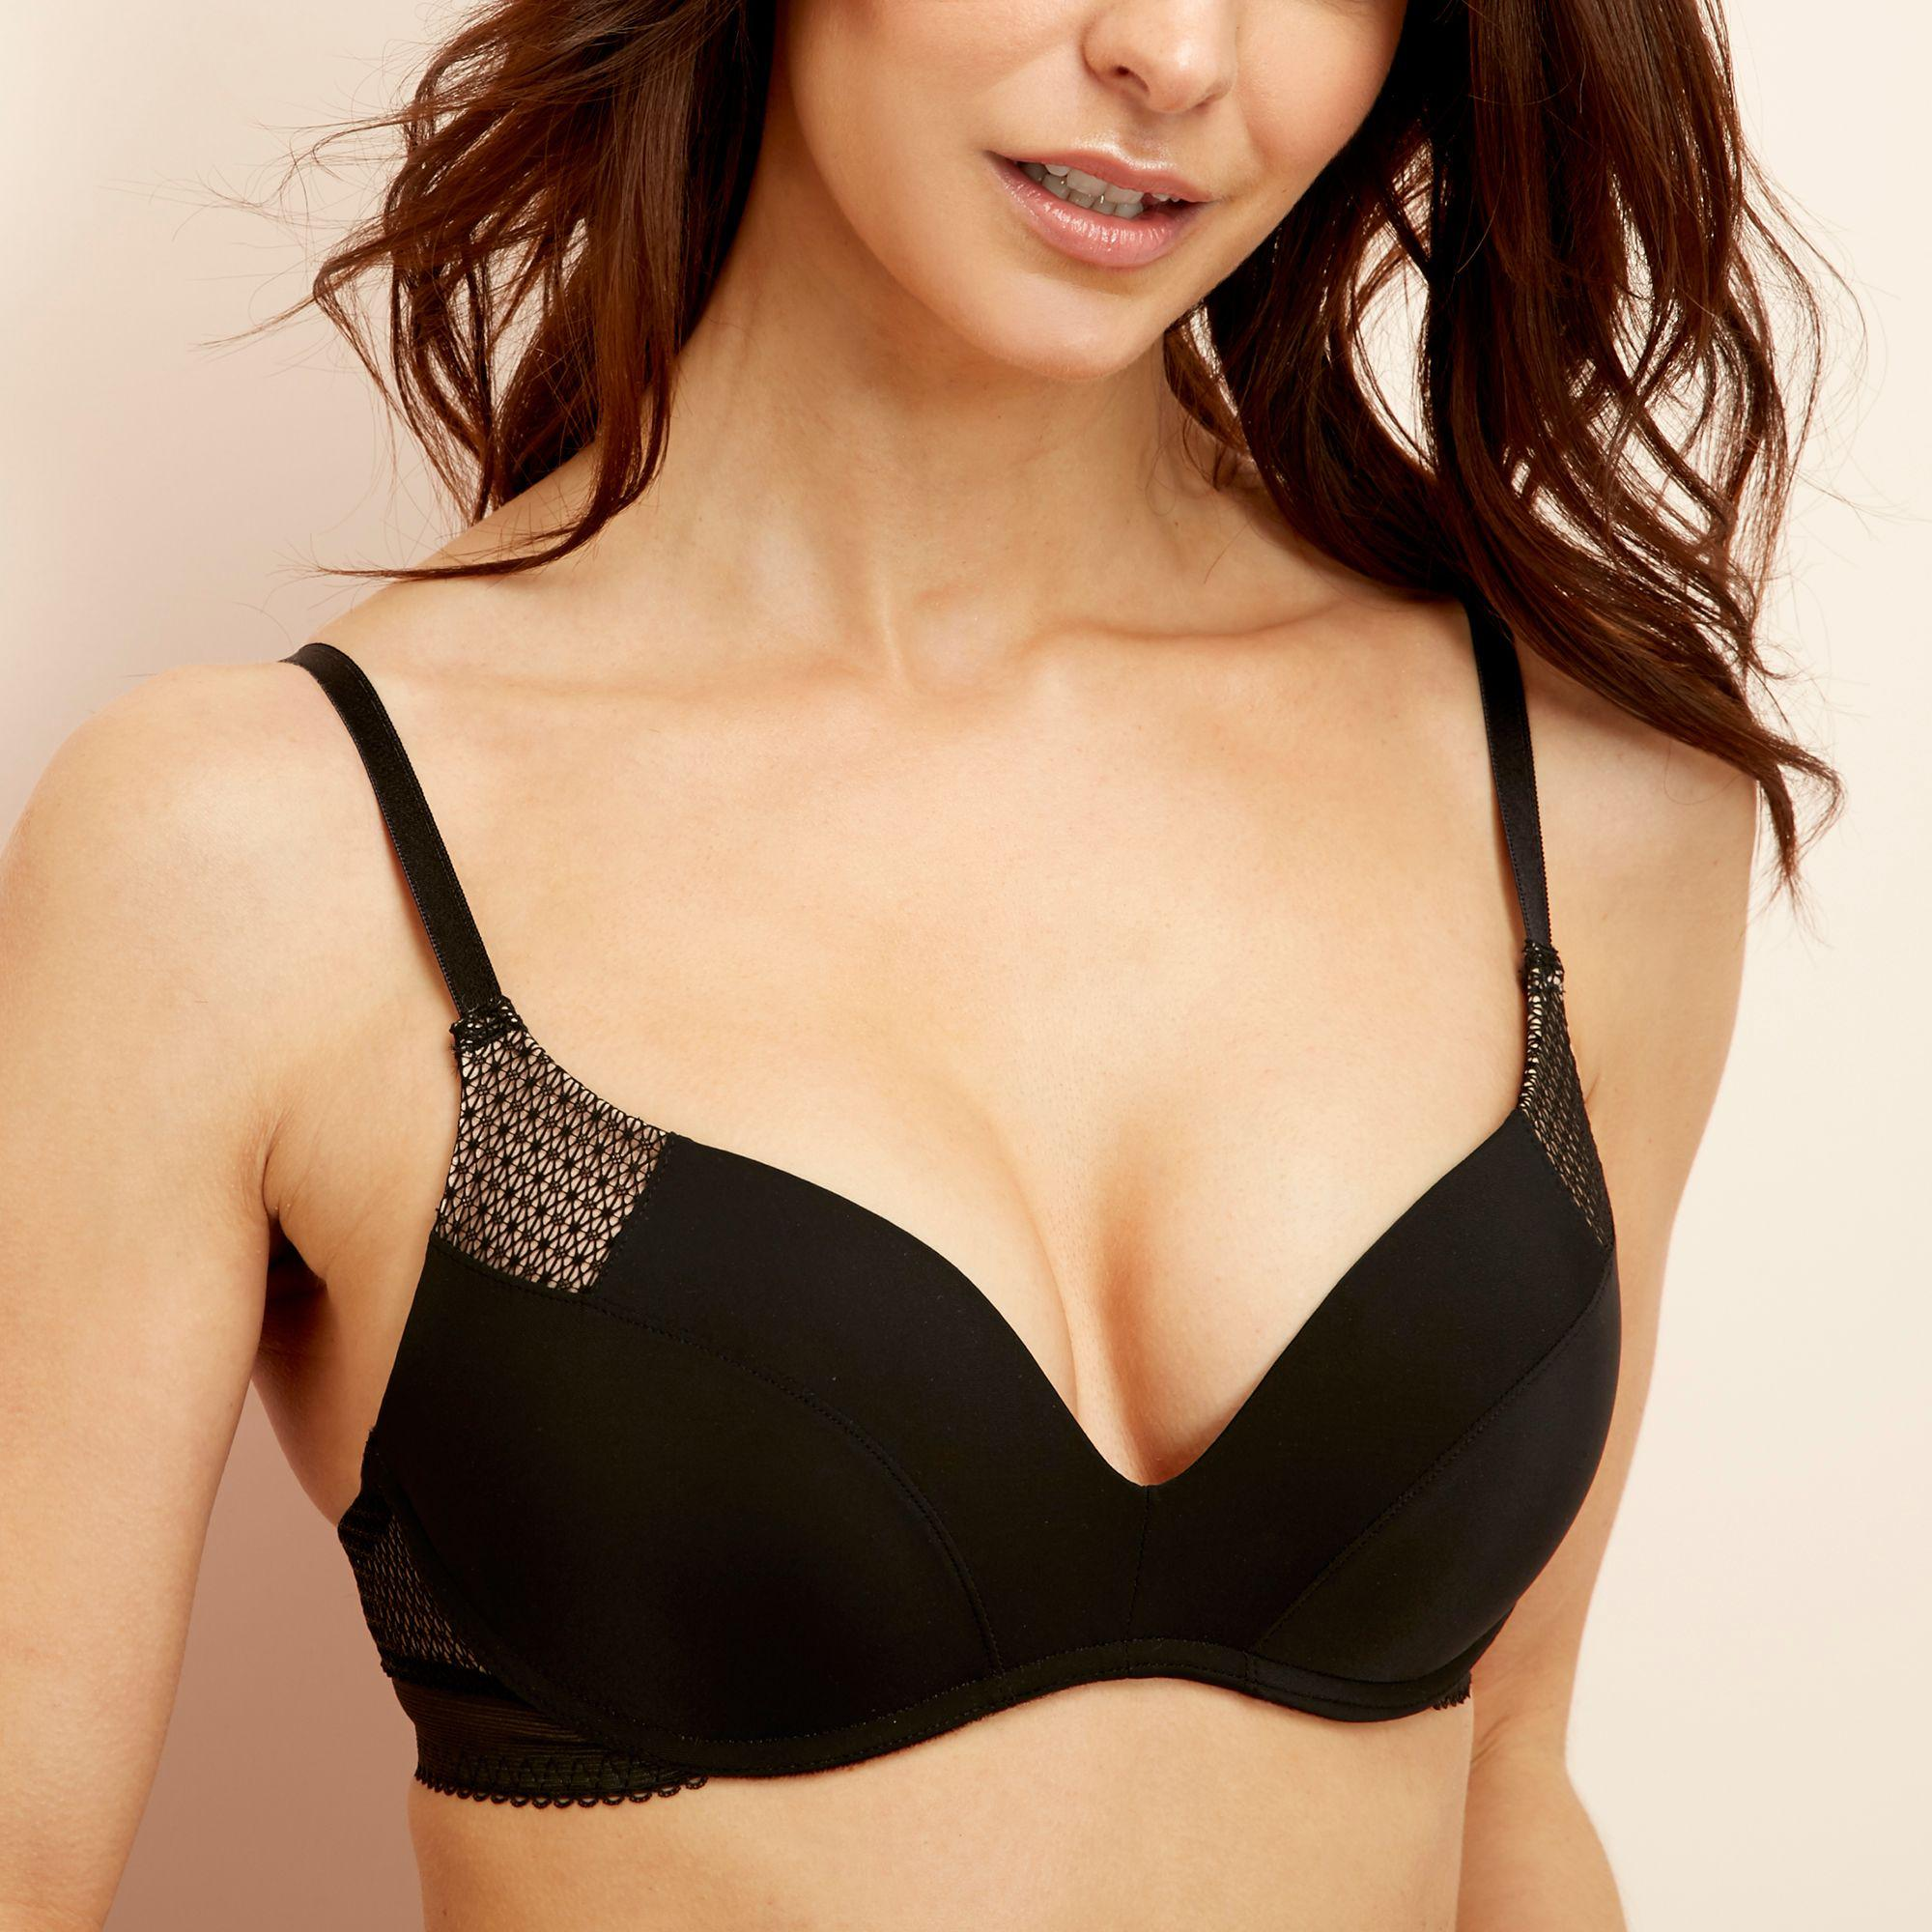 d727146c0762f Wonderbra Black Microfibre  ultimate  Non-wired Padded Push-up T ...